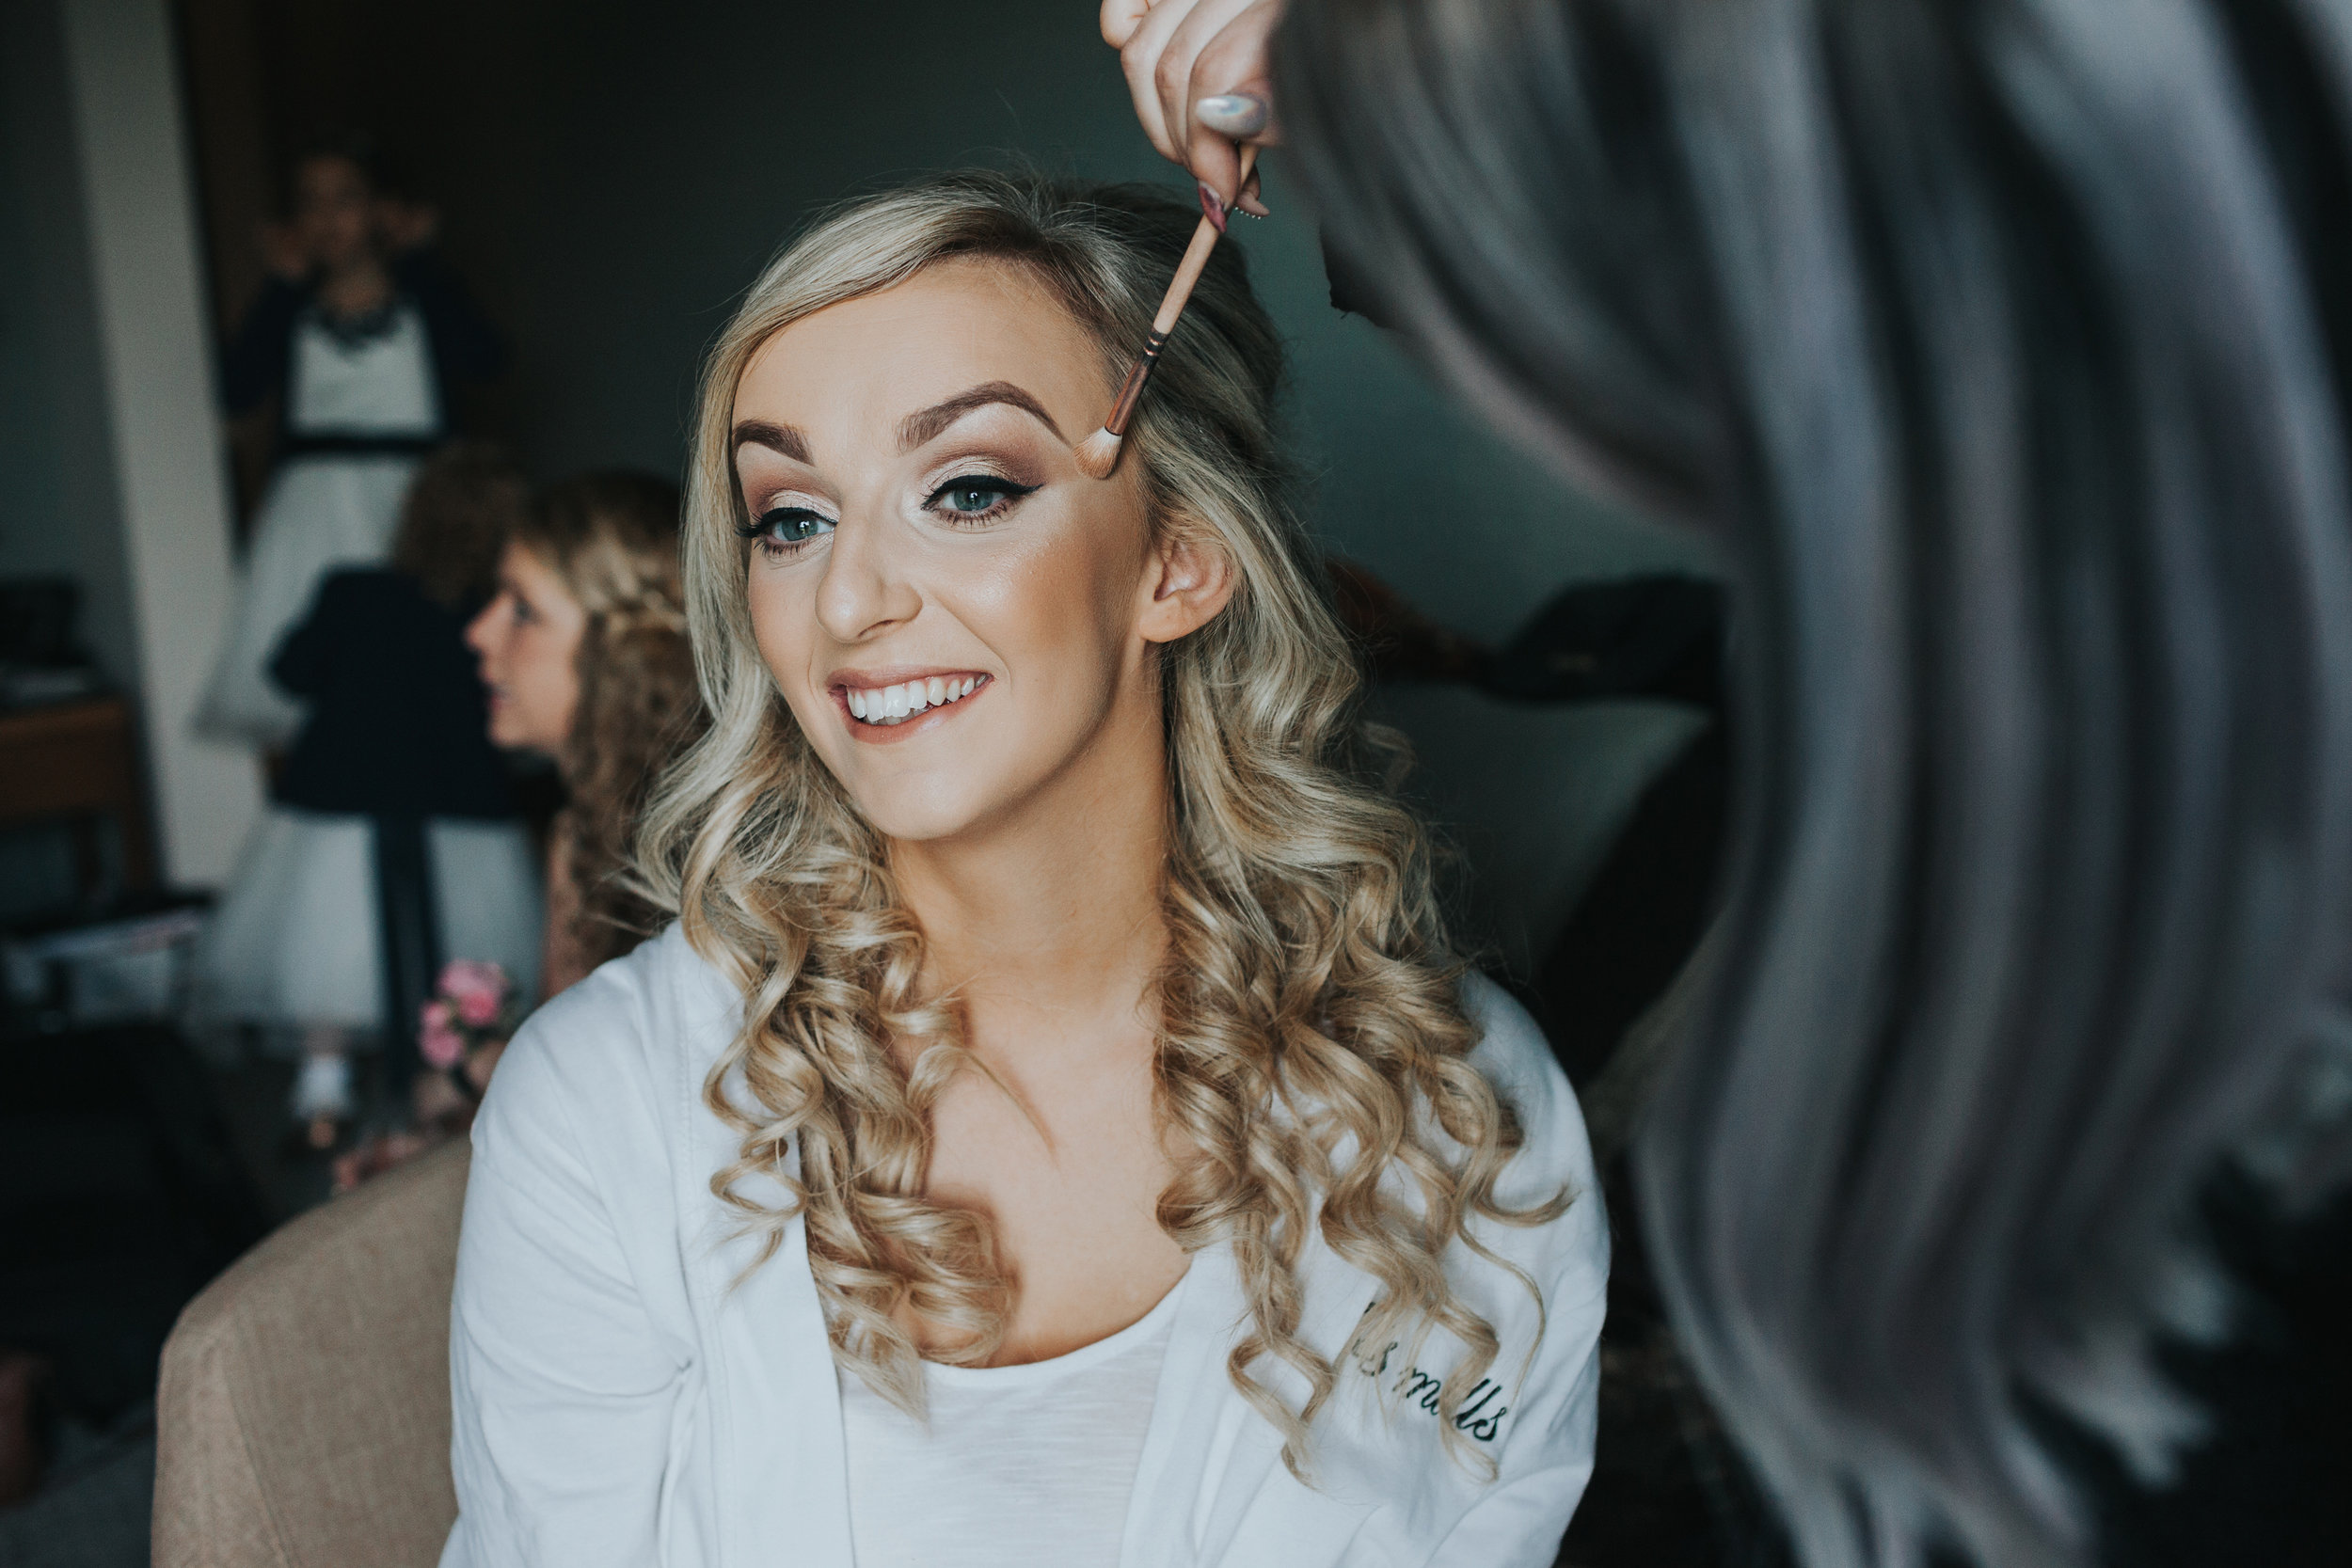 Bride getting her make up put on.